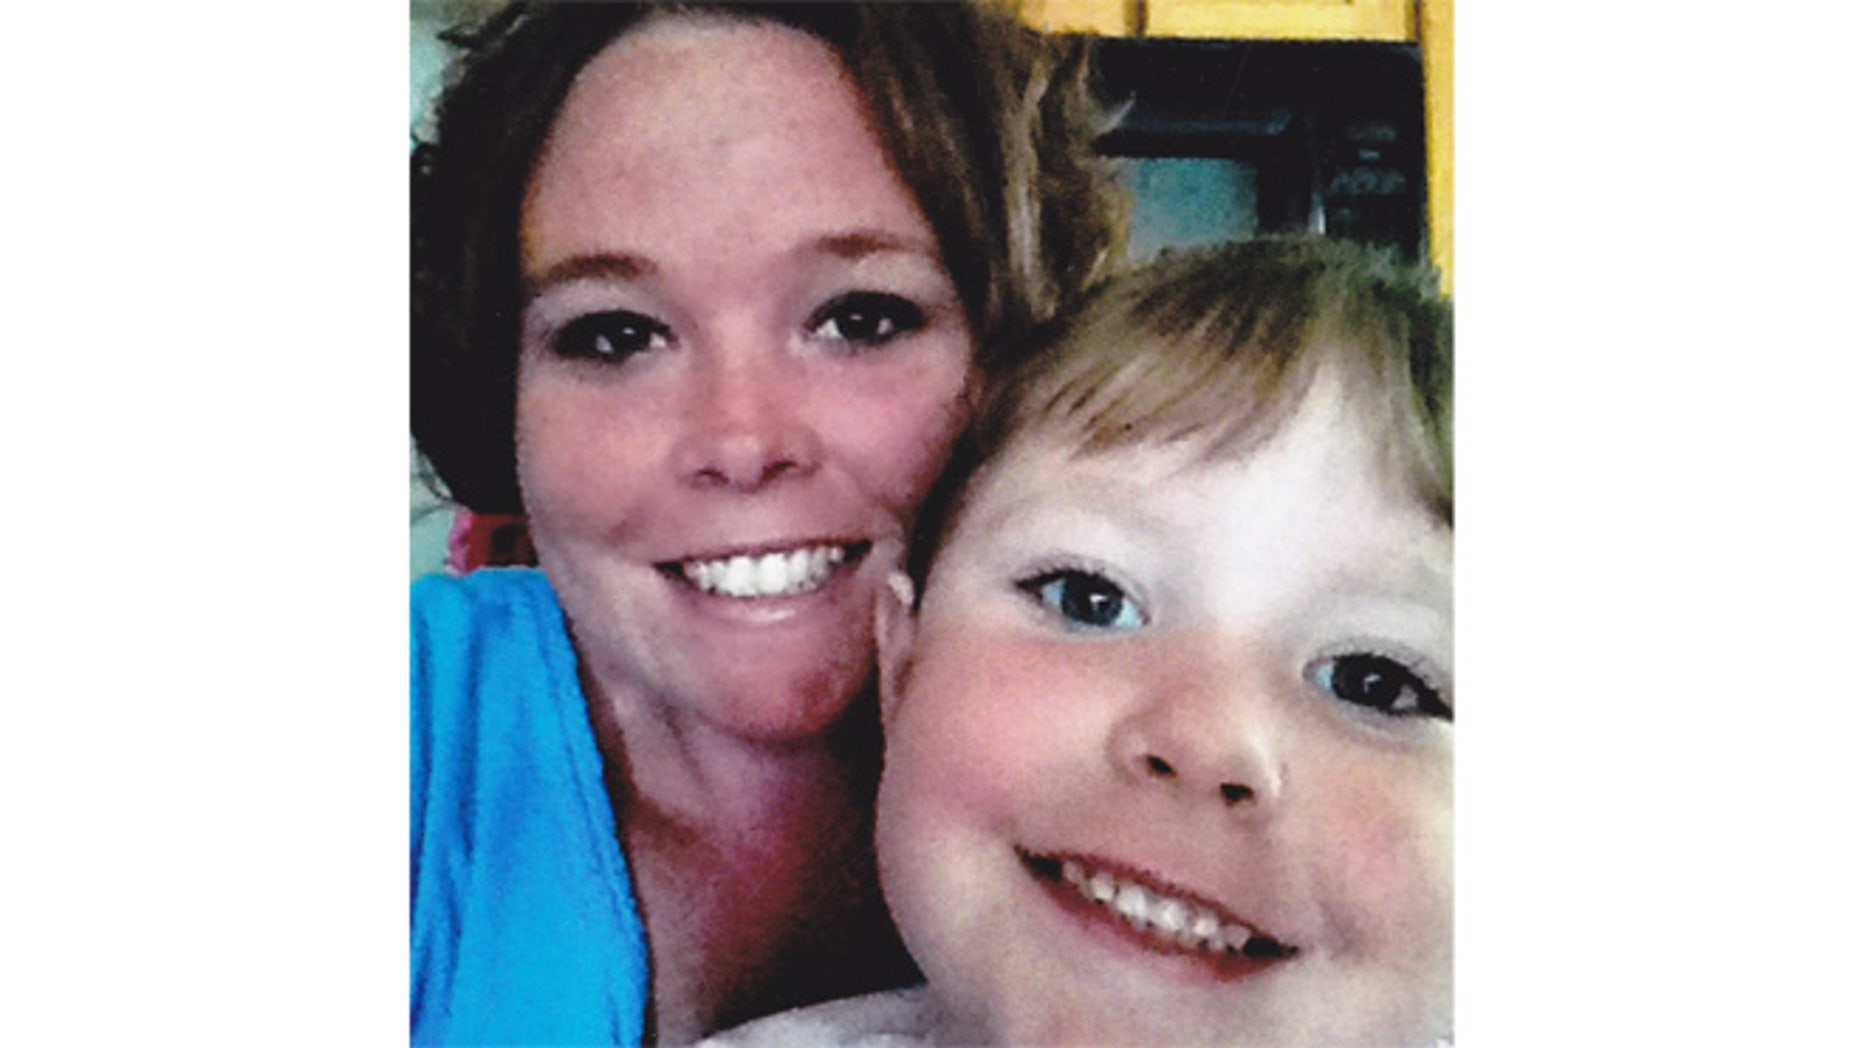 In this undated photo released by Chariton County Sheriff's office, Rachel Koechner and her 4-year-old daughter Zoee Sandner are shown.